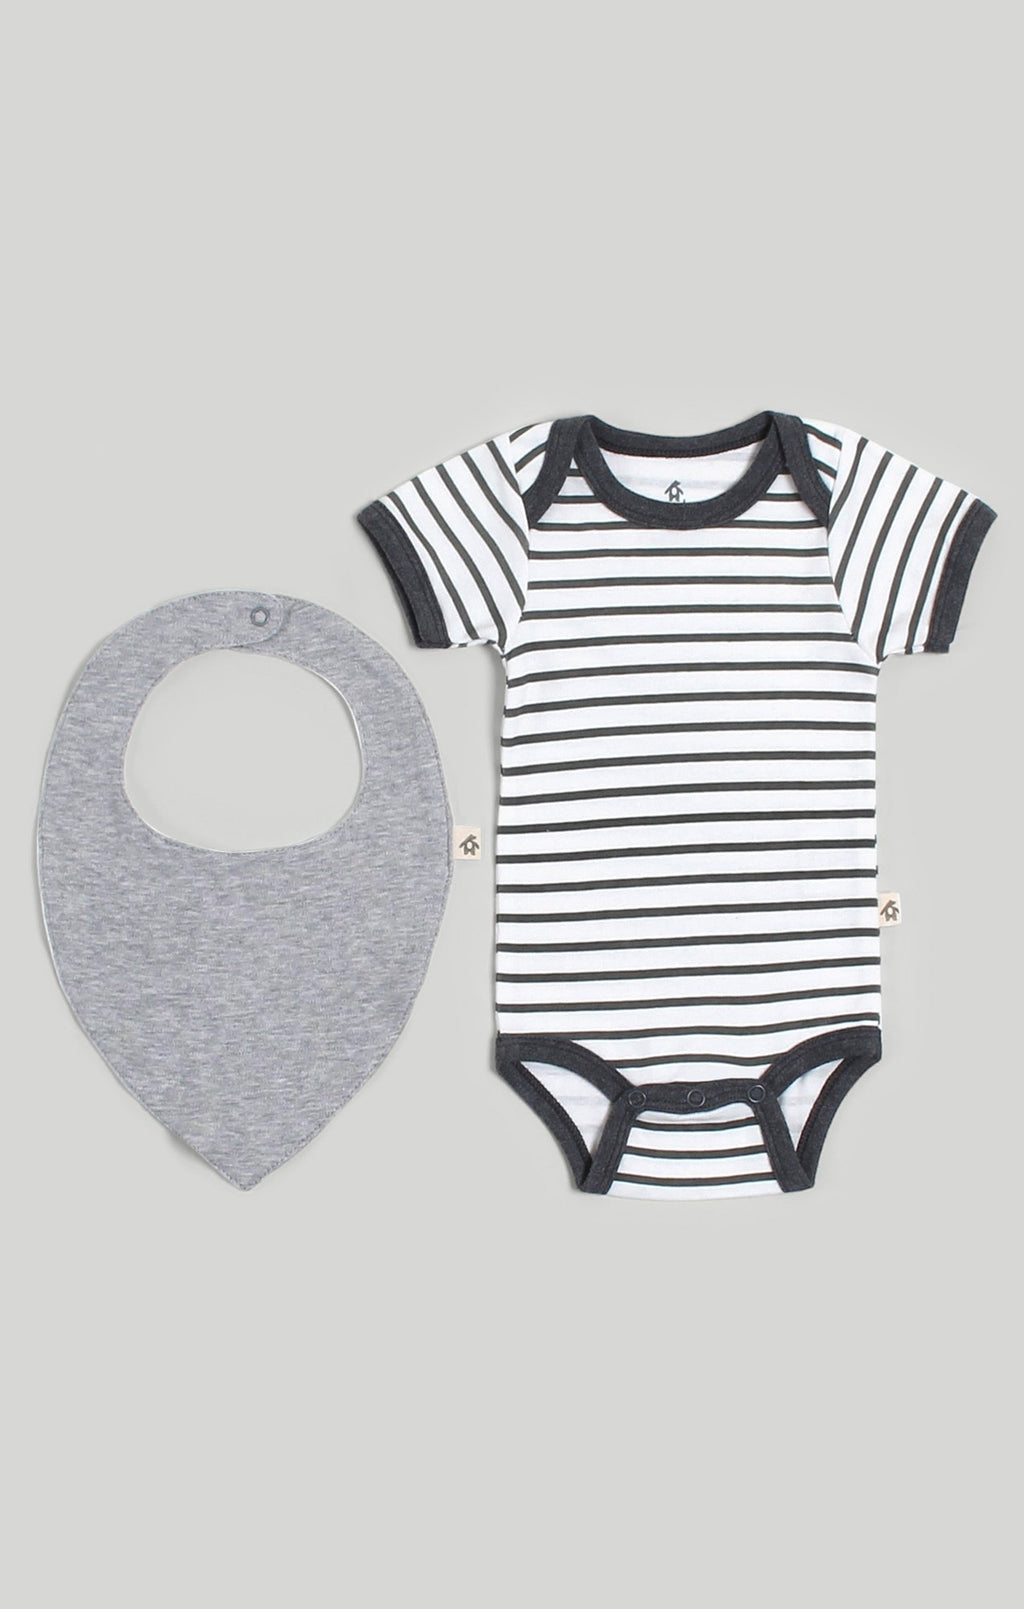 Baby Clothes | Stripe Bib & Baby Bodysuit Set